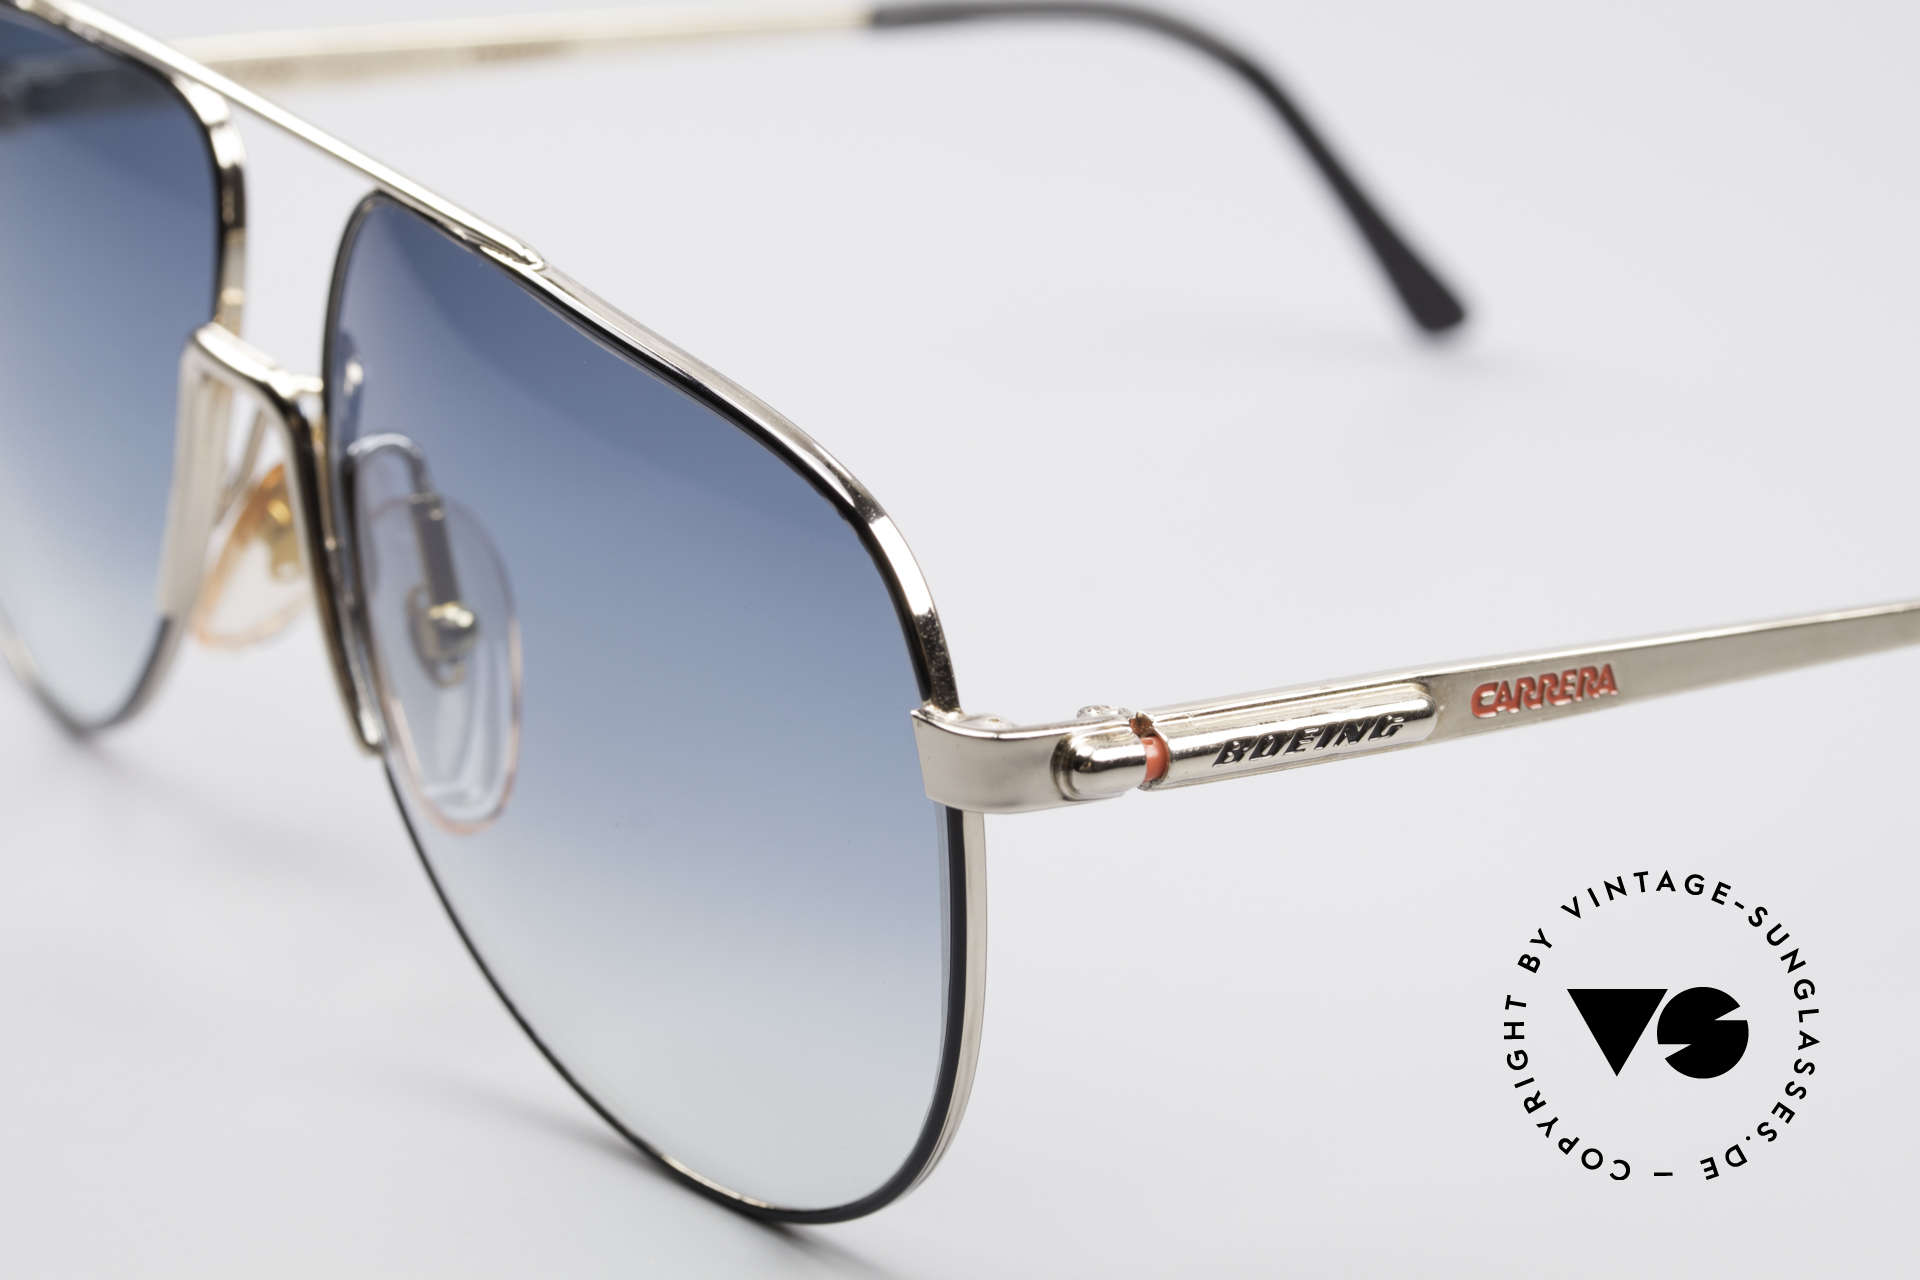 Boeing 5730 True Aviator 80s Sunglasses, fantastic top-quality (made for the Boeing pilots needs), Made for Men